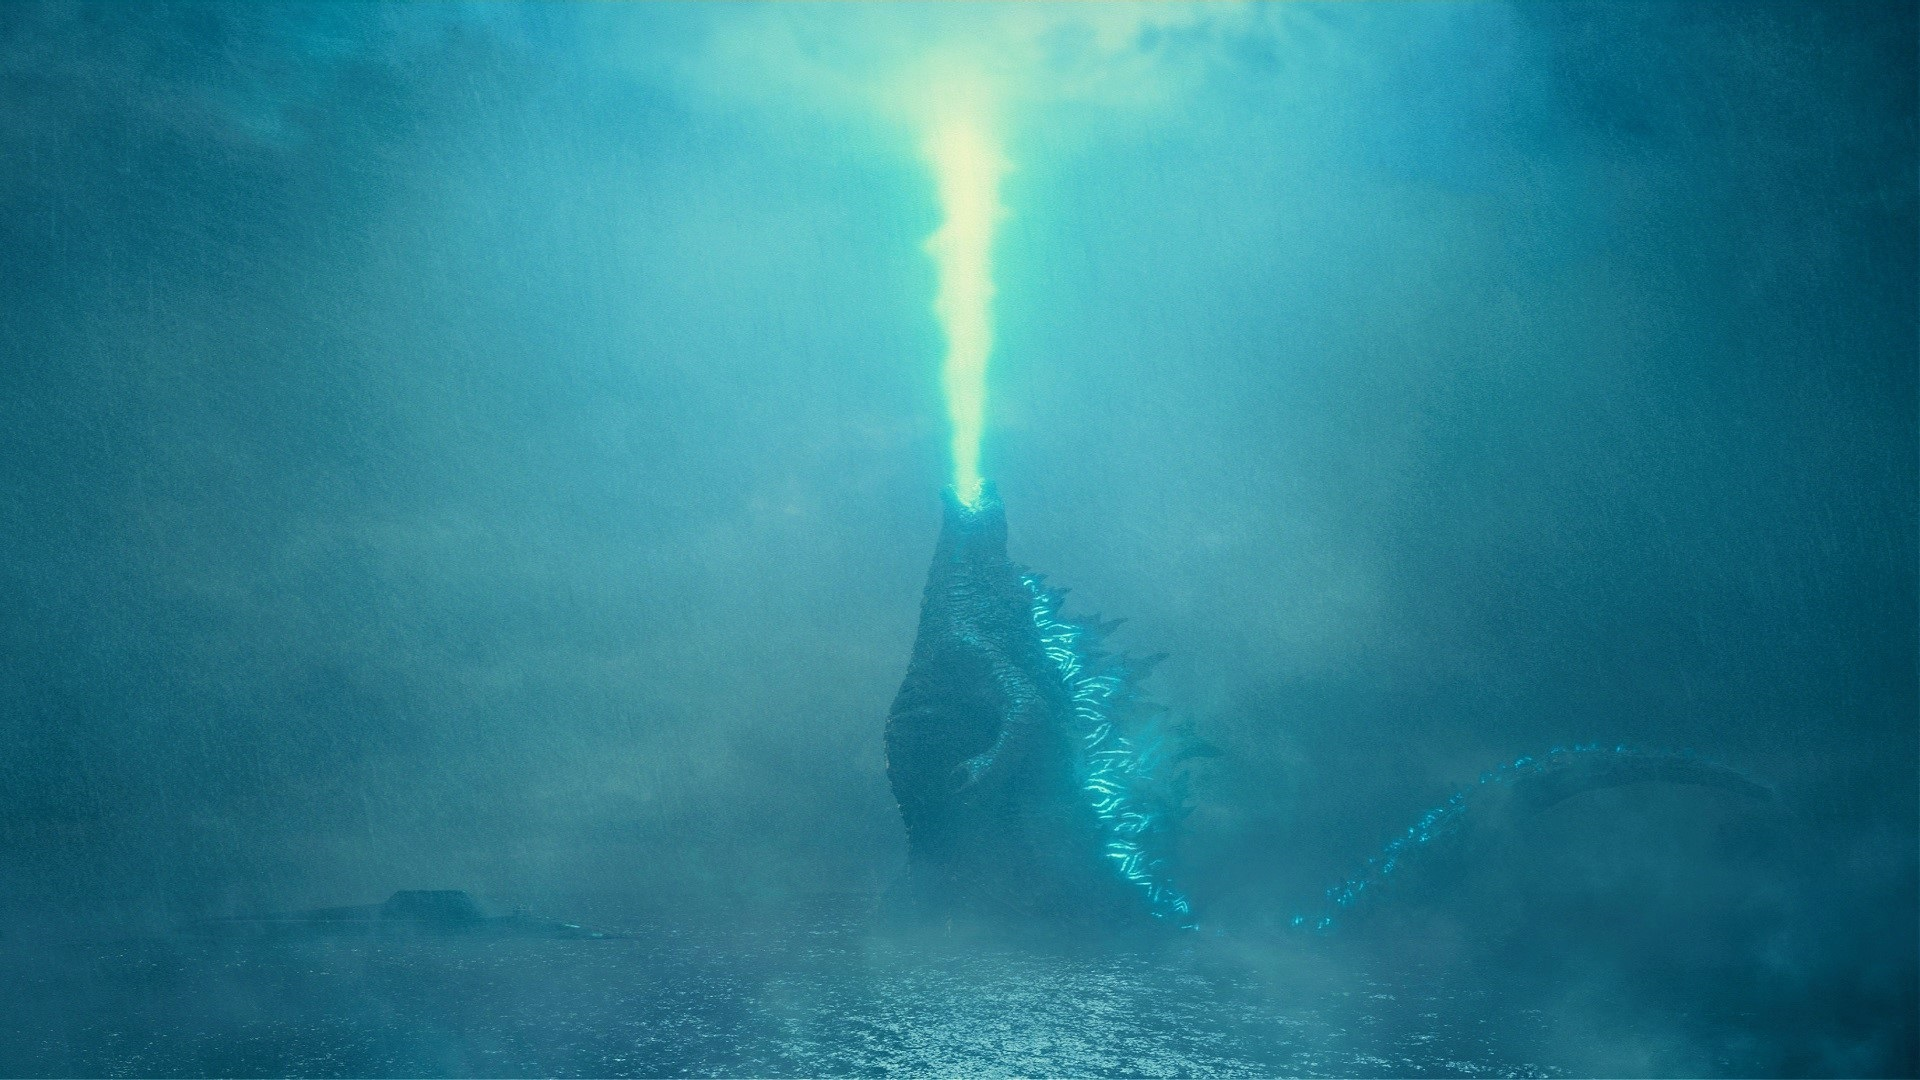 10. Godzilla: King of the Monsters